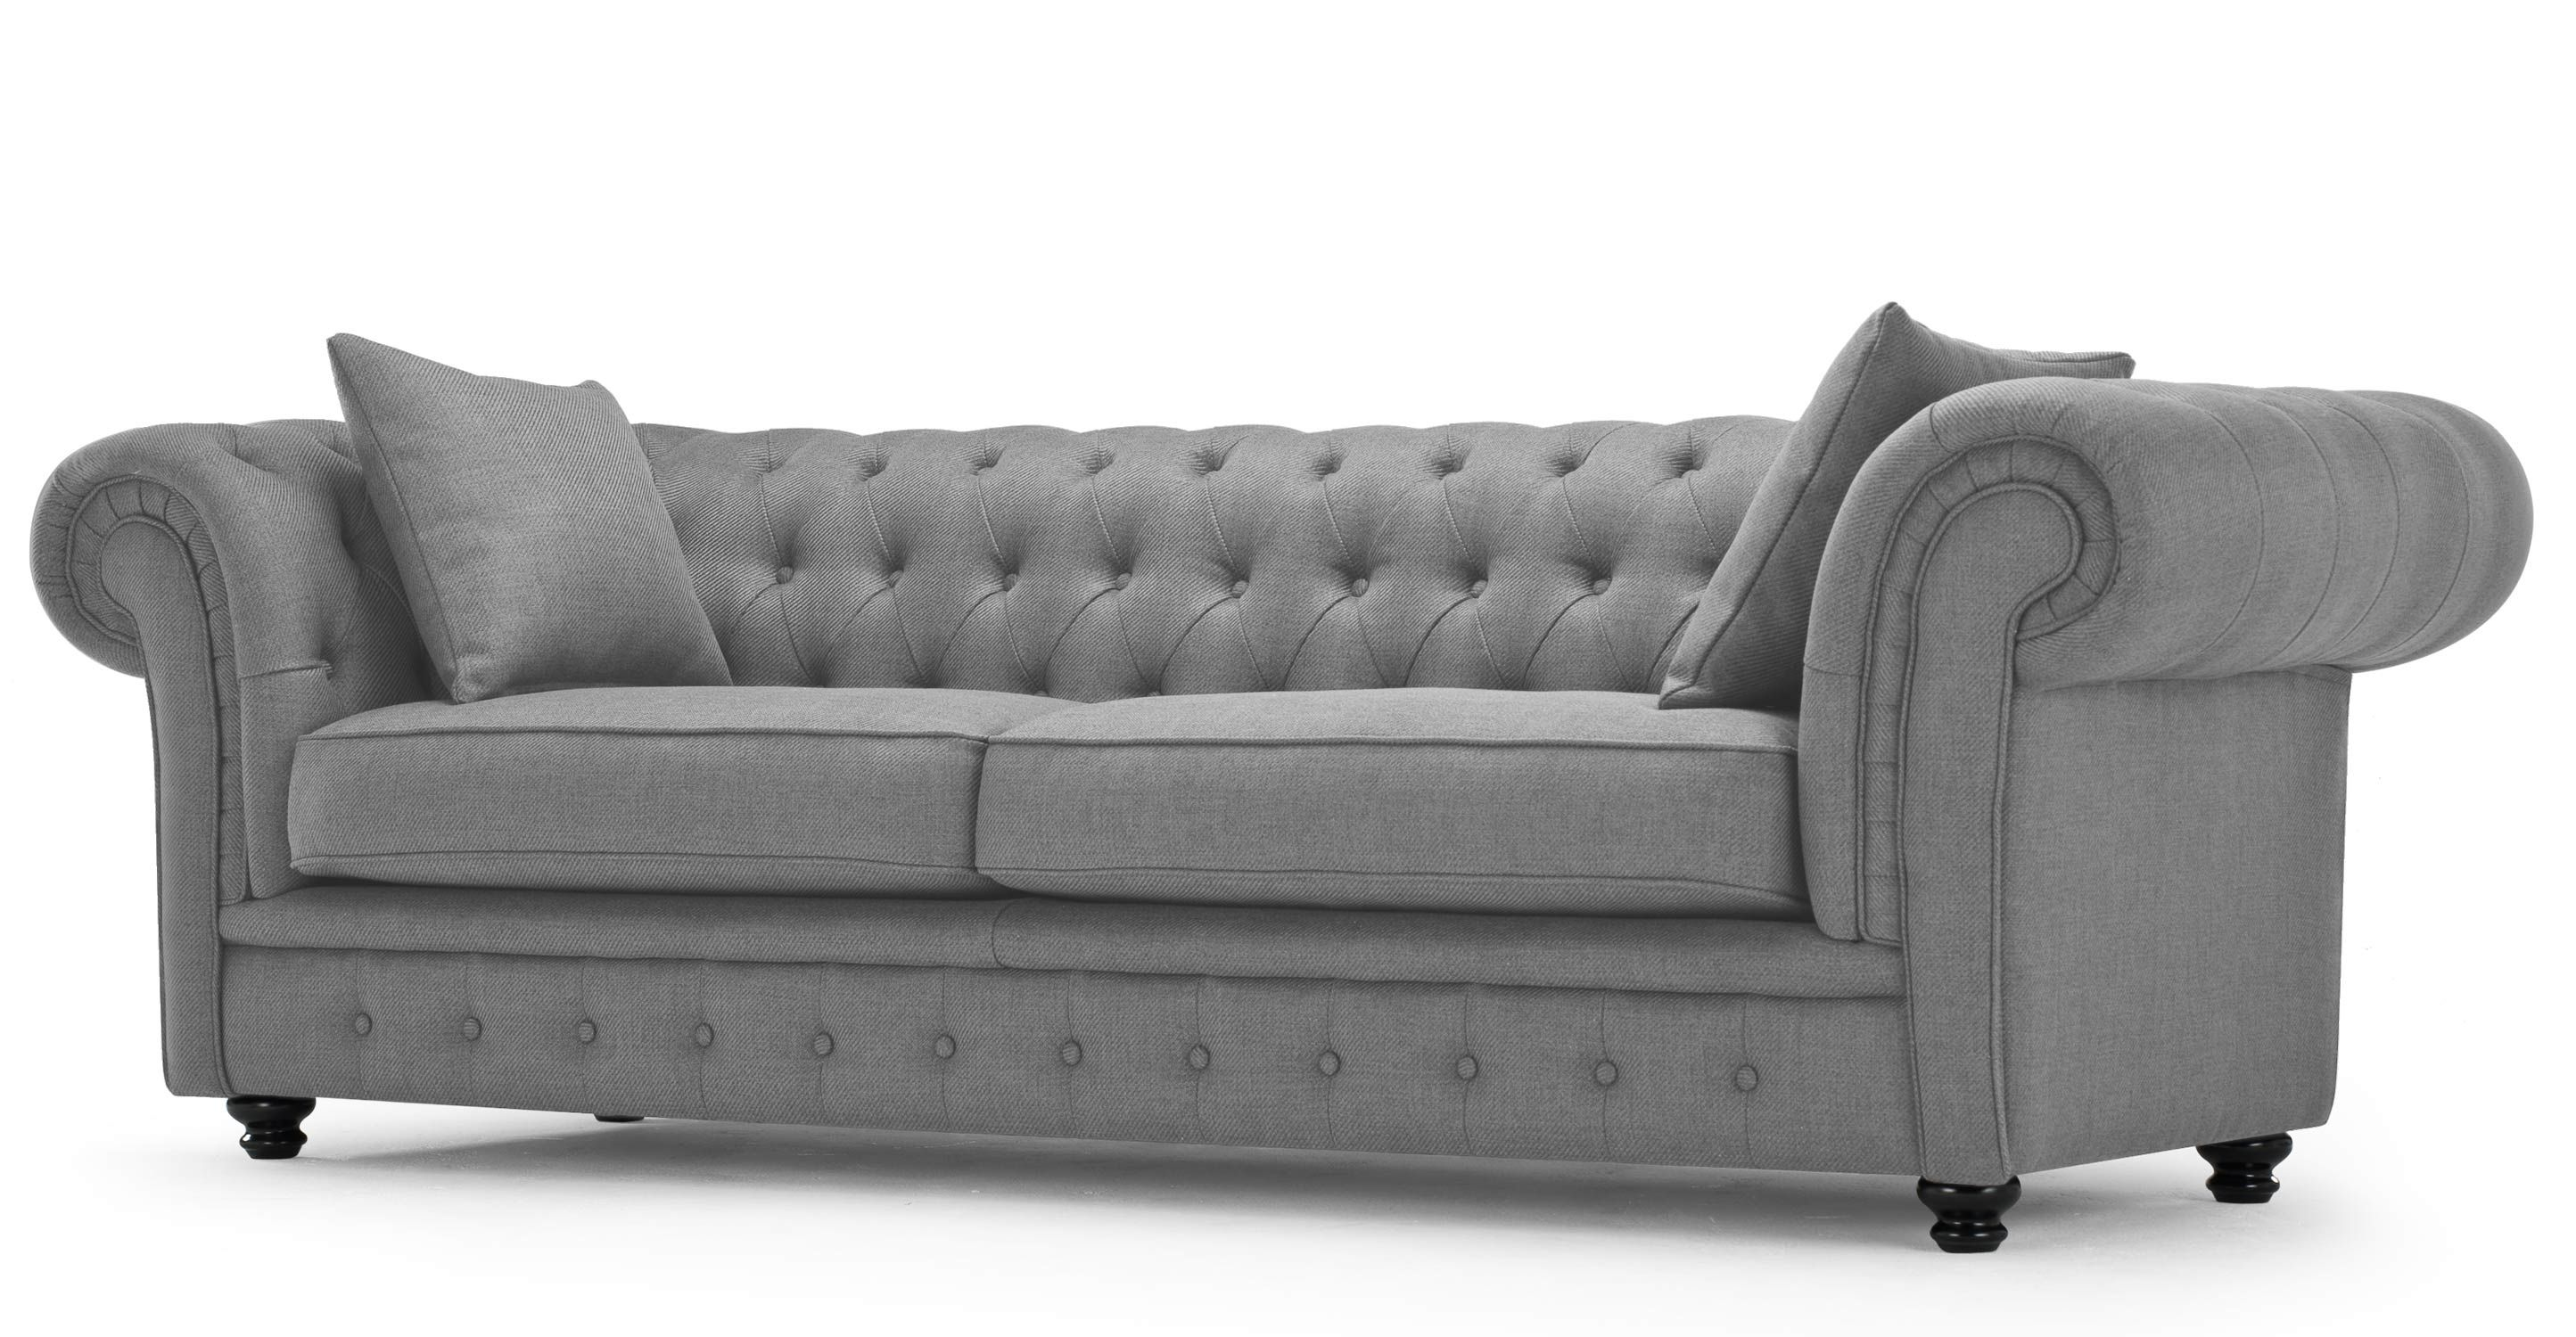 Branagh 3 Seater Chesterfield Sofa Pearl Grey Fabric Chesterfield Sofa Grey Chesterfield Sofa Chesterfield Sofa